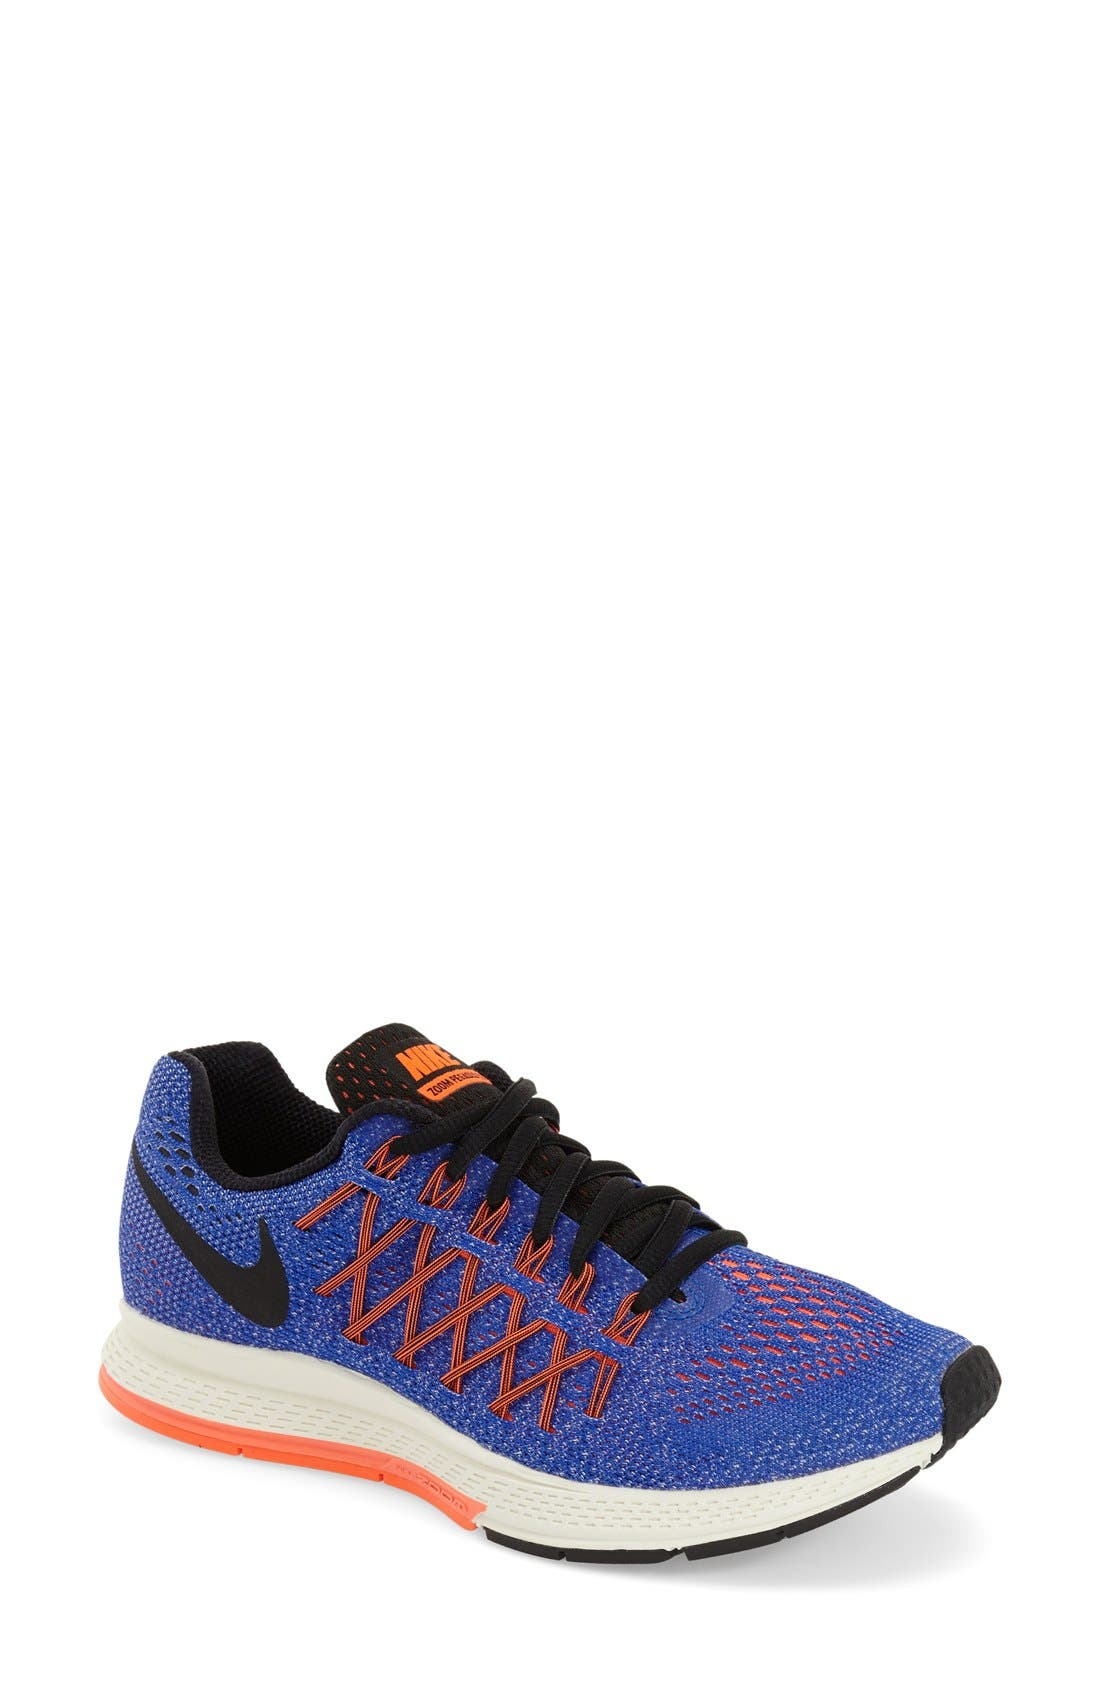 Alternate Image 1 Selected - Nike 'Zoom Pegasus 32' Running Shoe (Women)